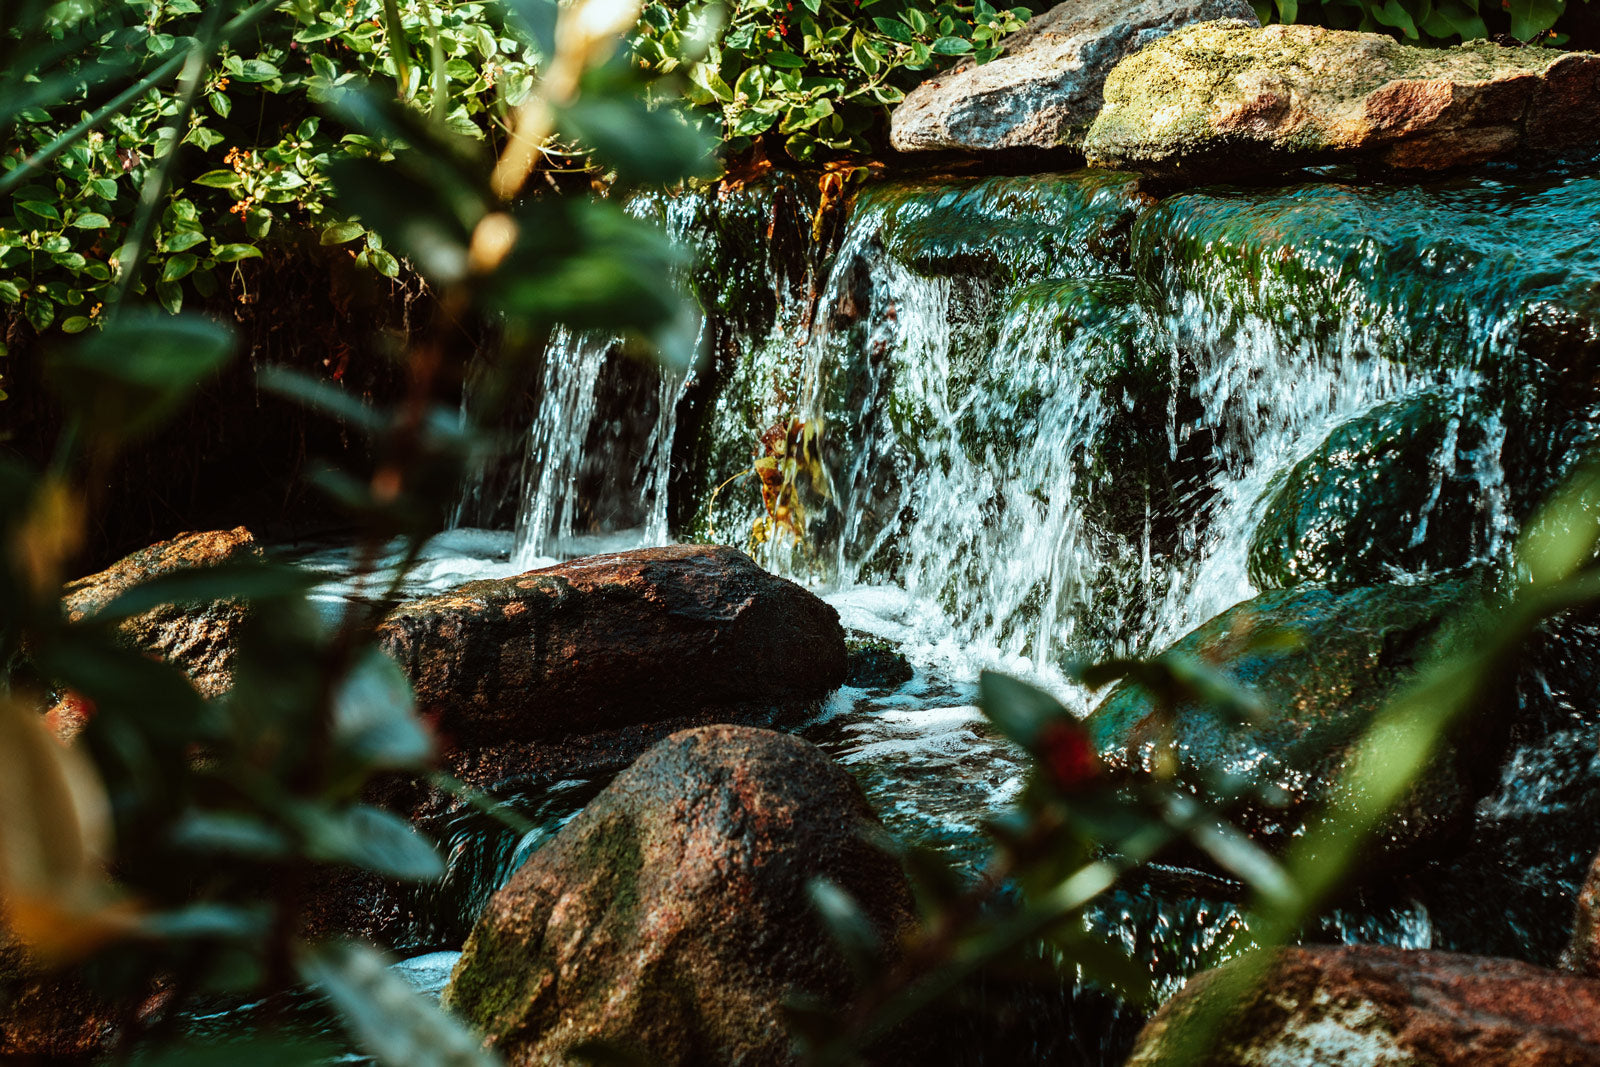 image of small green brook with waterfall in forest